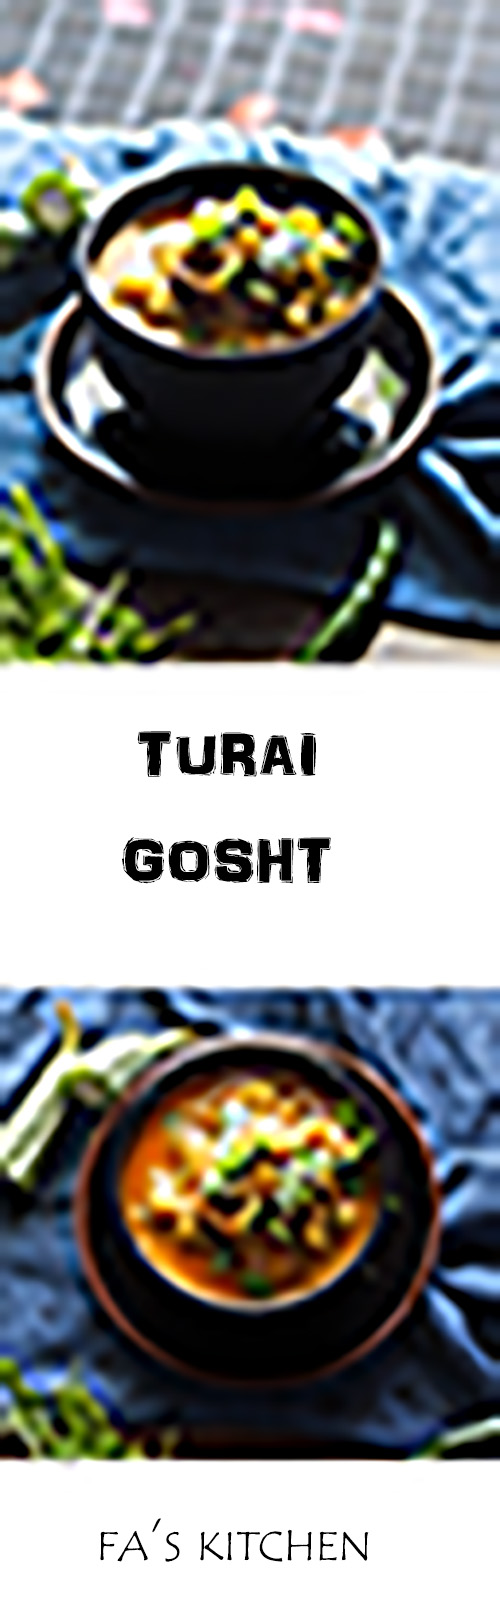 Turai gosht recipe is a delicious combination of ridge gourd and mutton curry. It is not only tasty but also very easy to make.